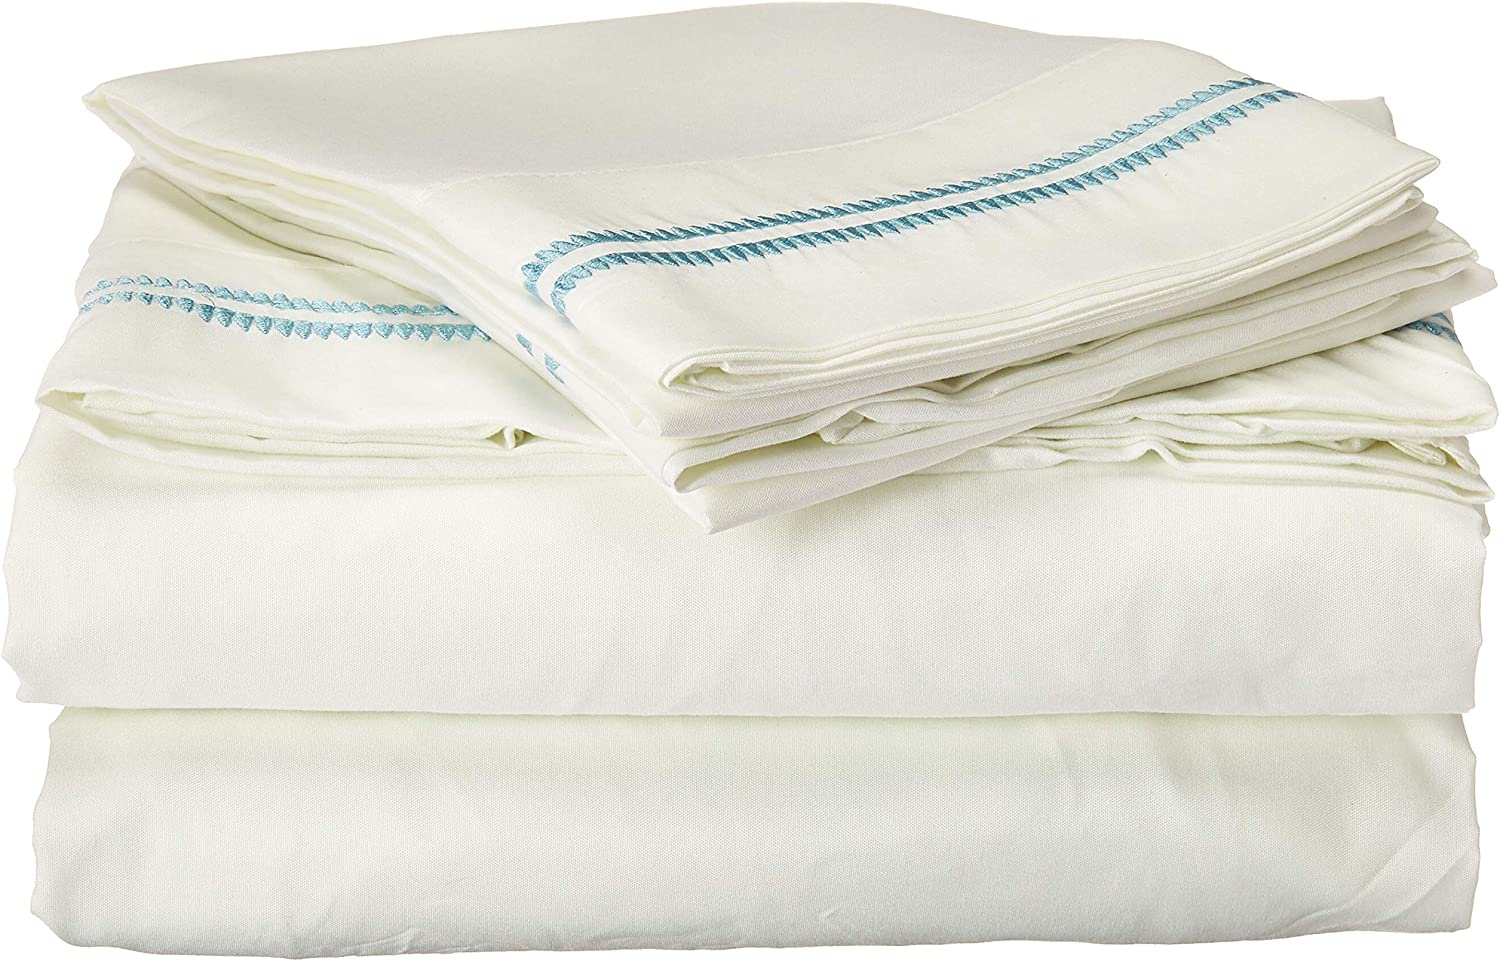 Posh Home 4 Piece (Queen, Double Scallop-Blue) Embroidered Sheet Set